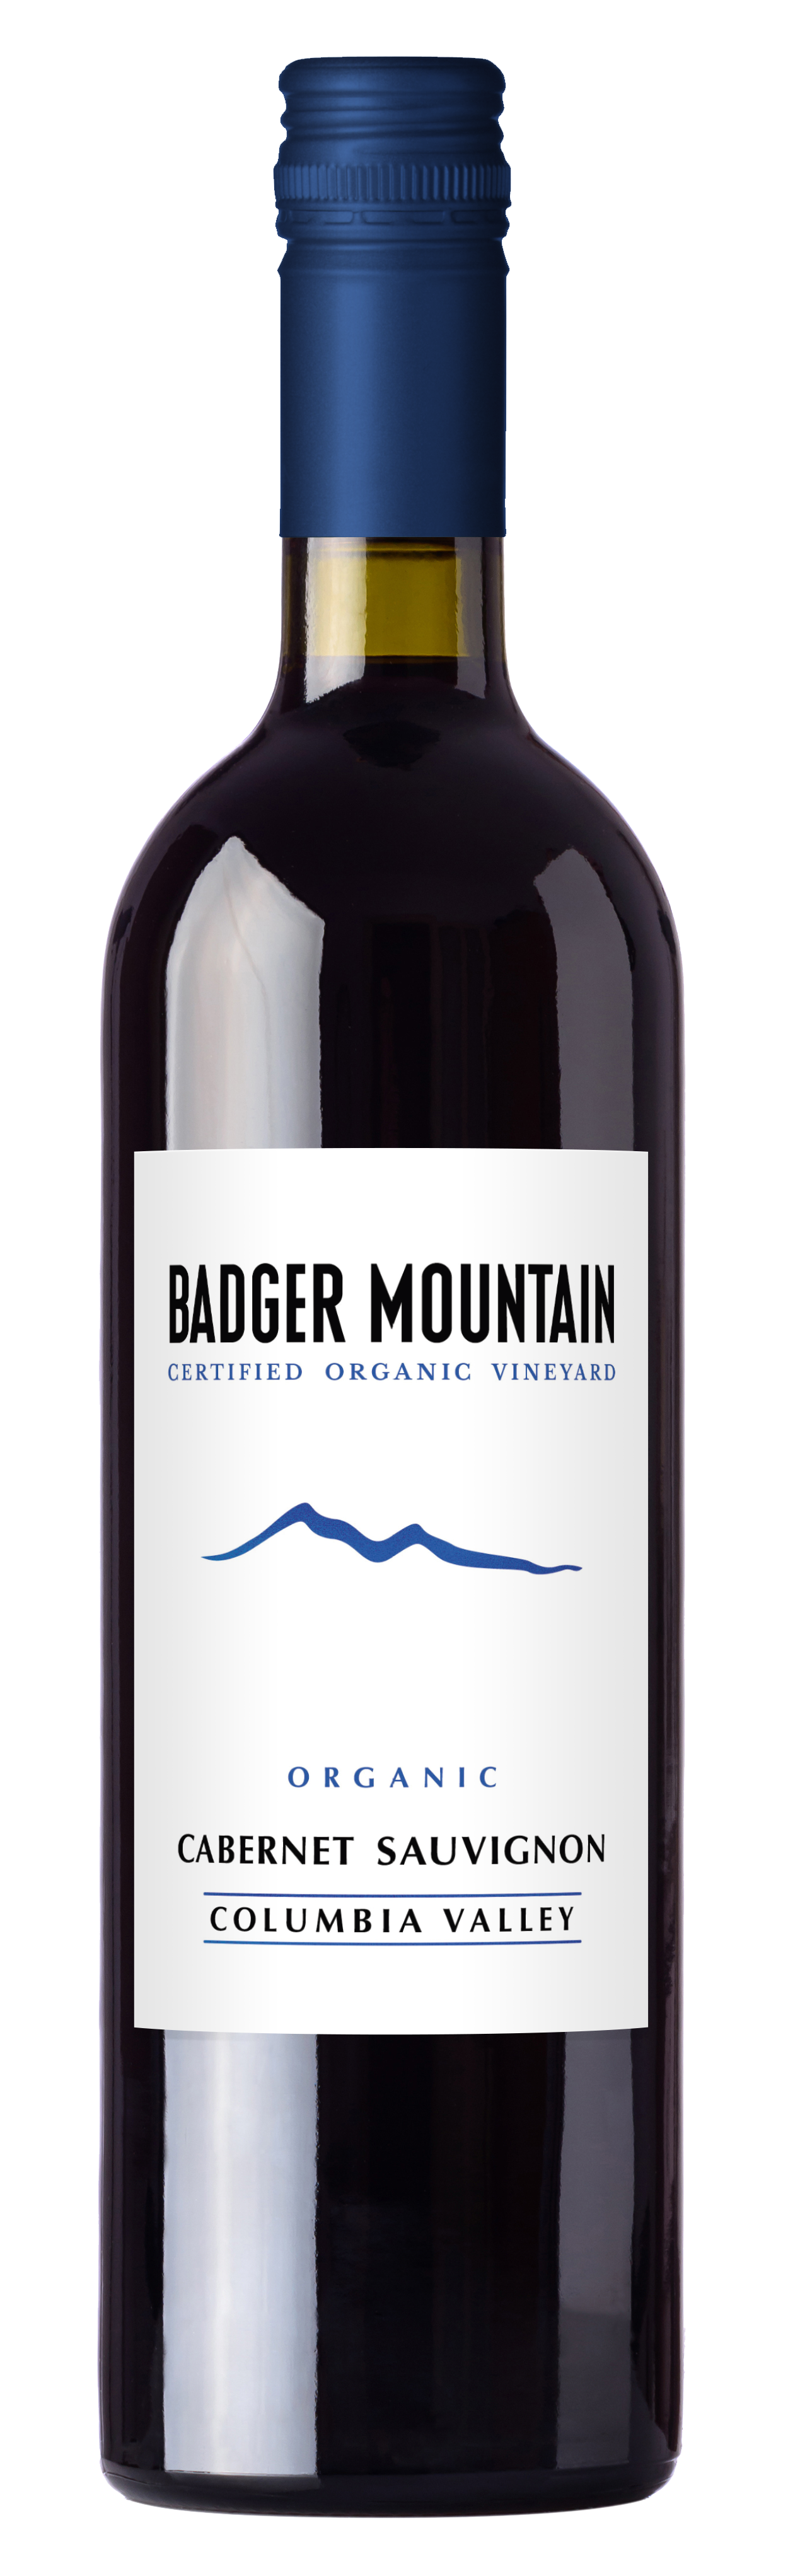 2019 Badger Mountain Organic Cabernet Sauvignon Photo